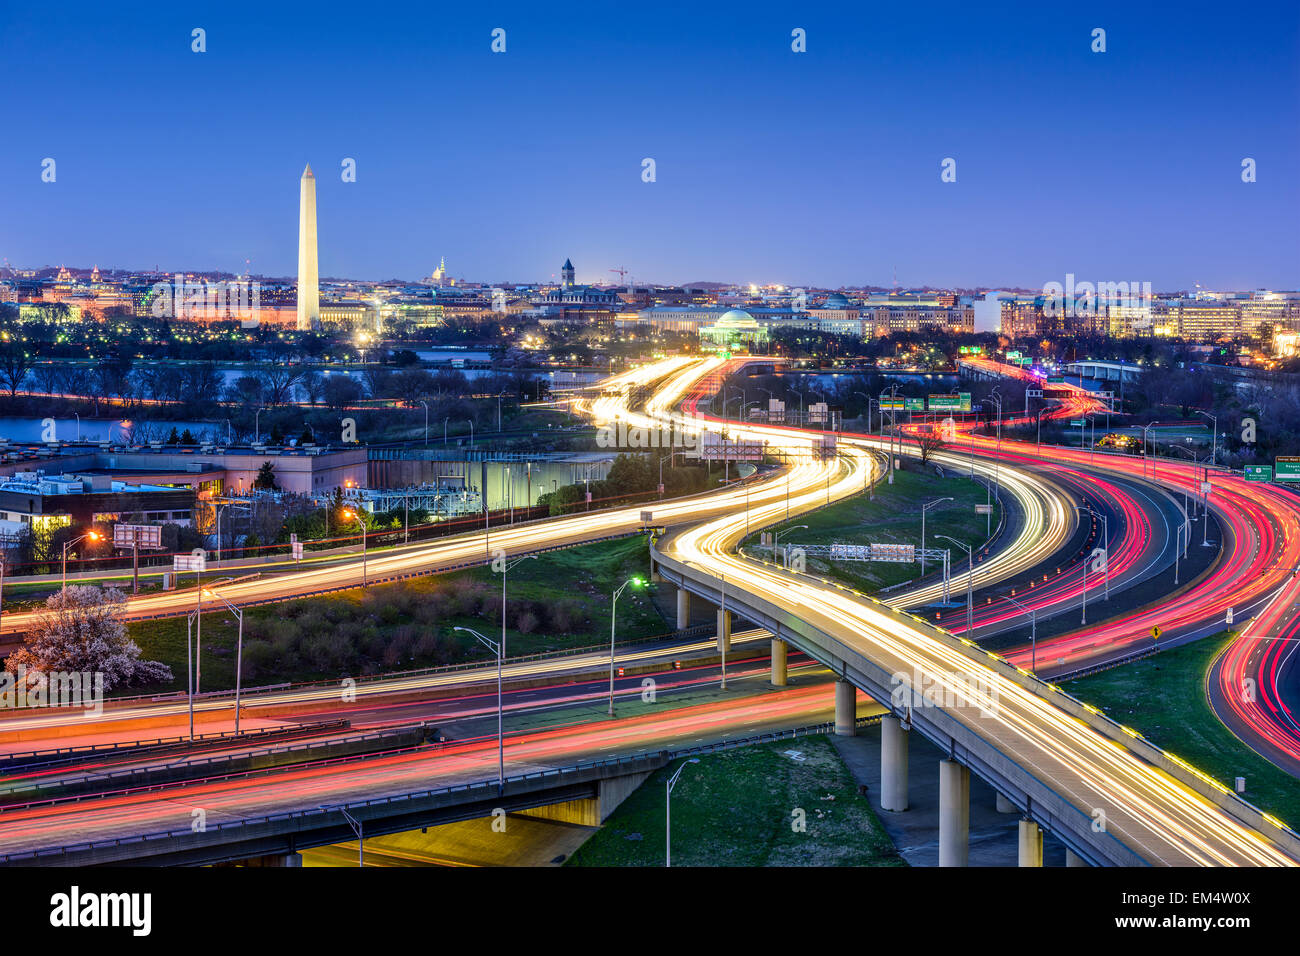 Washington D.C., skyline with highways and monuments. - Stock Image